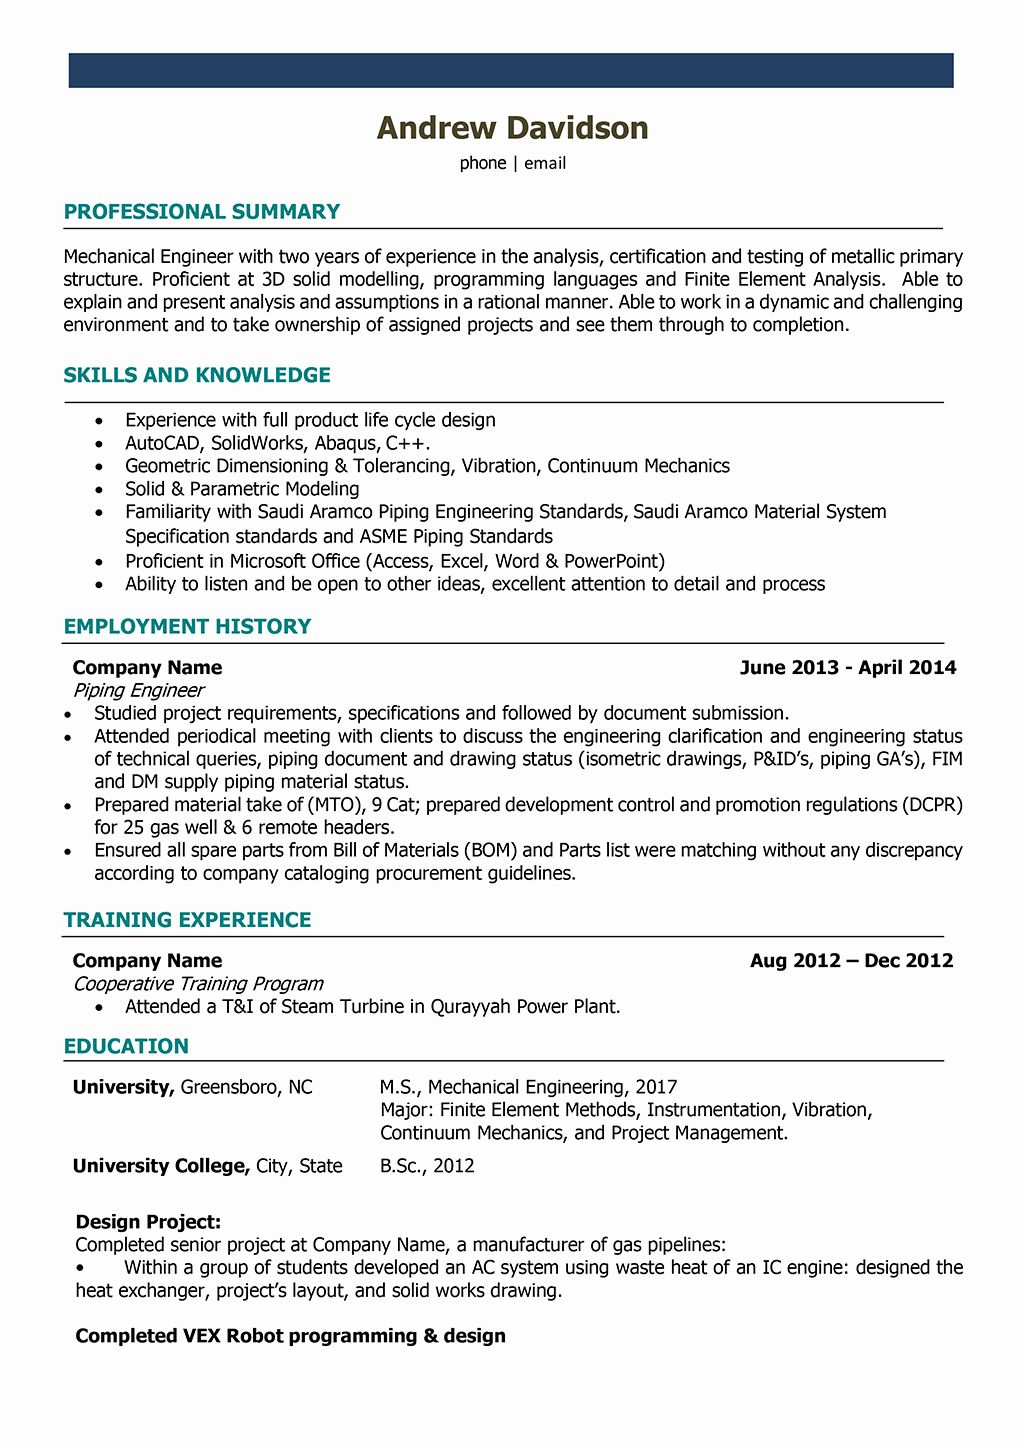 Mechanical Engineer Resume Template Beautiful Mechanical Engineer Resume Samples and Writing Guide [10